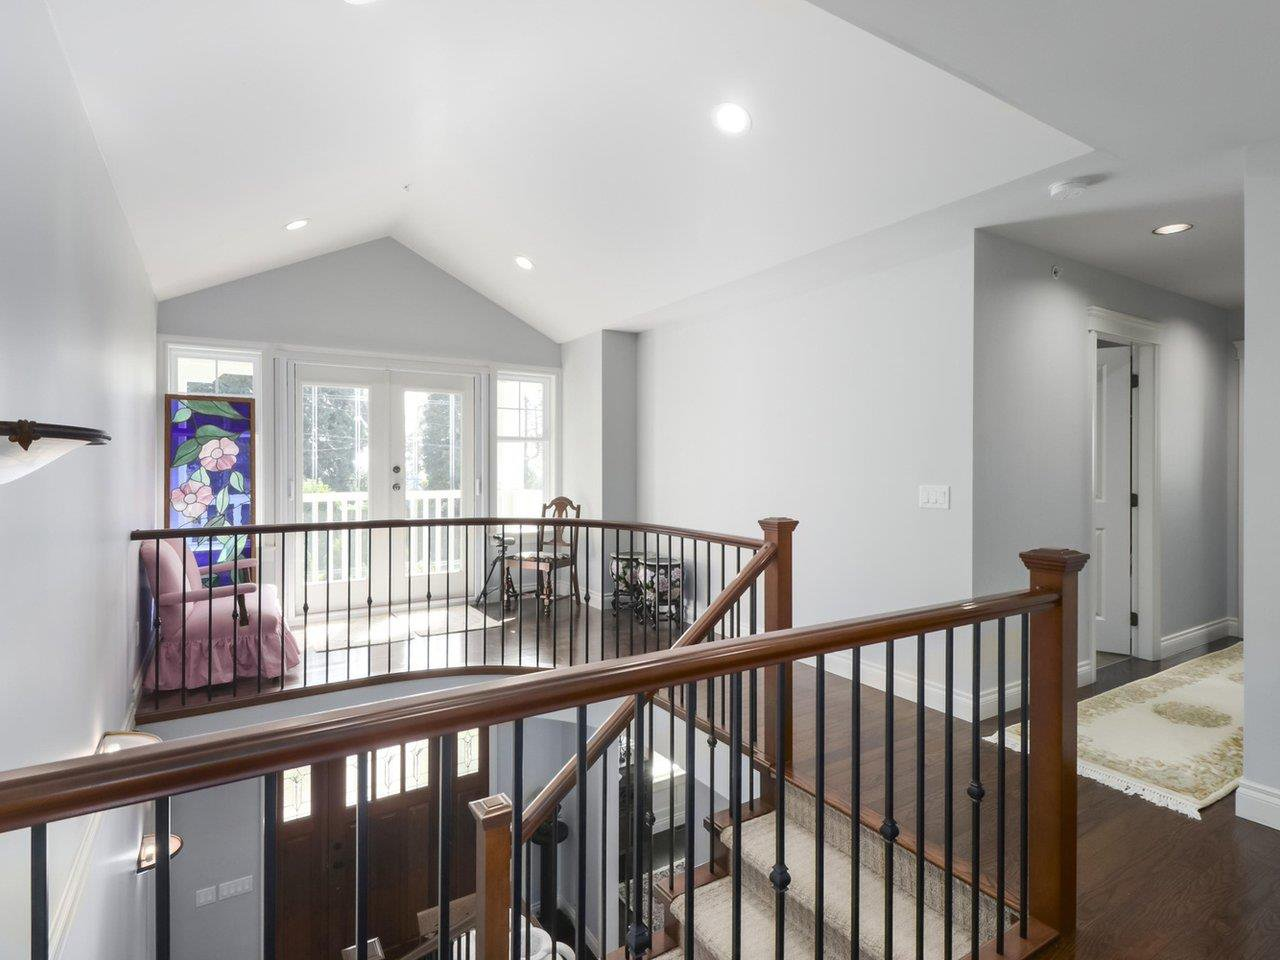 Photo 19: Photos: 13785 MARINE Drive: White Rock House for sale (South Surrey White Rock)  : MLS®# R2425352